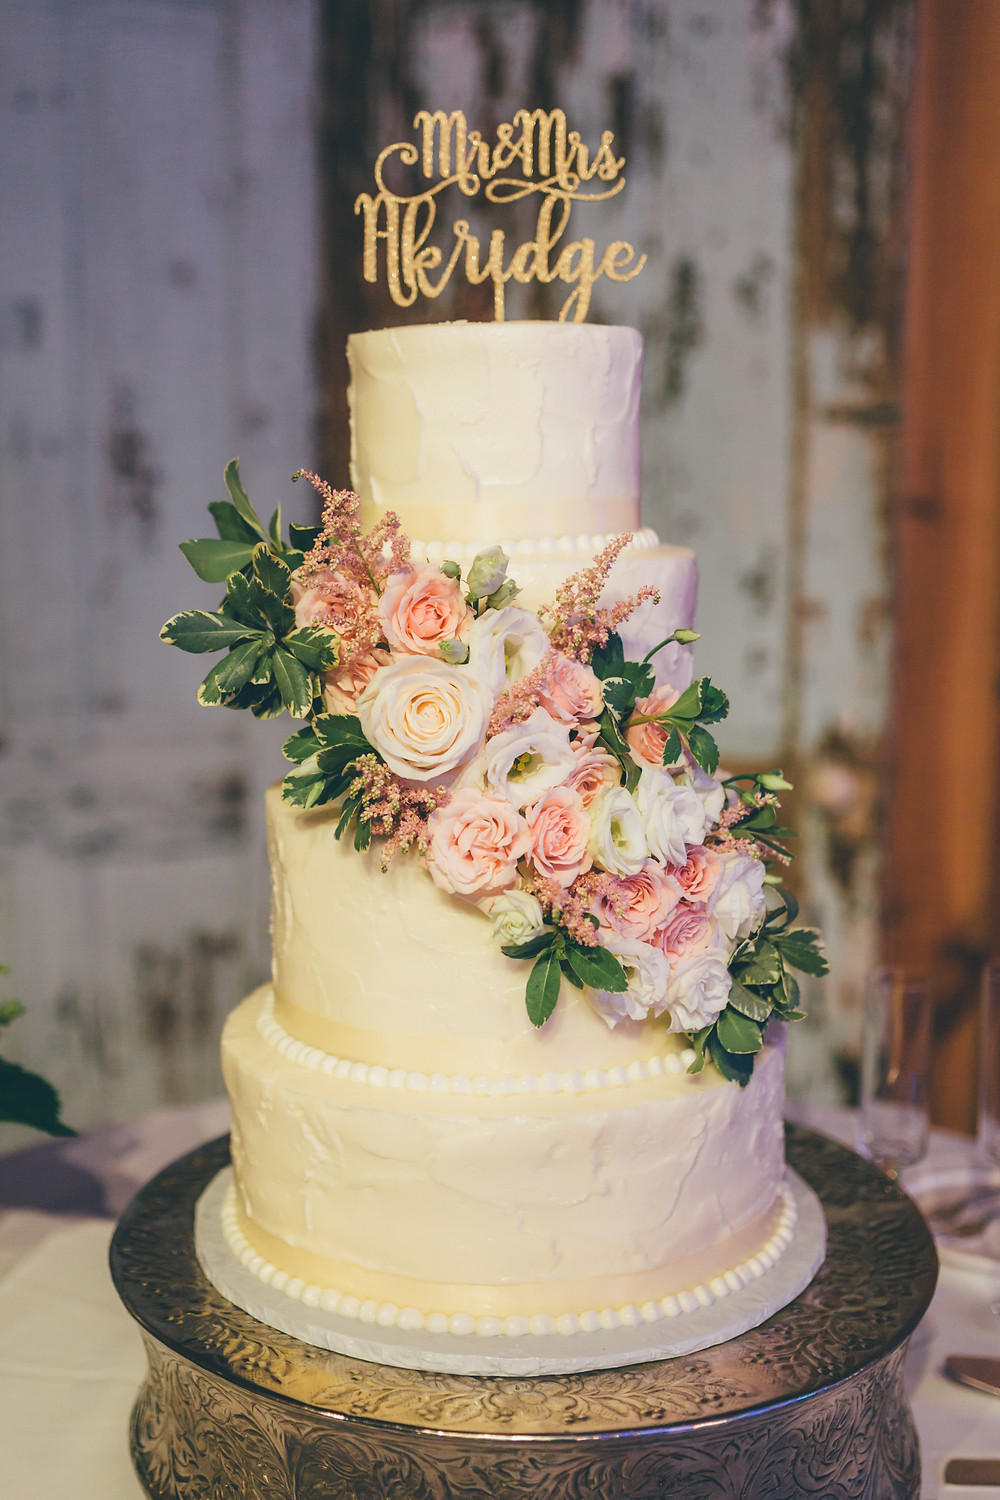 Cake by Pat Coody (c)Amber Phinisee Photography